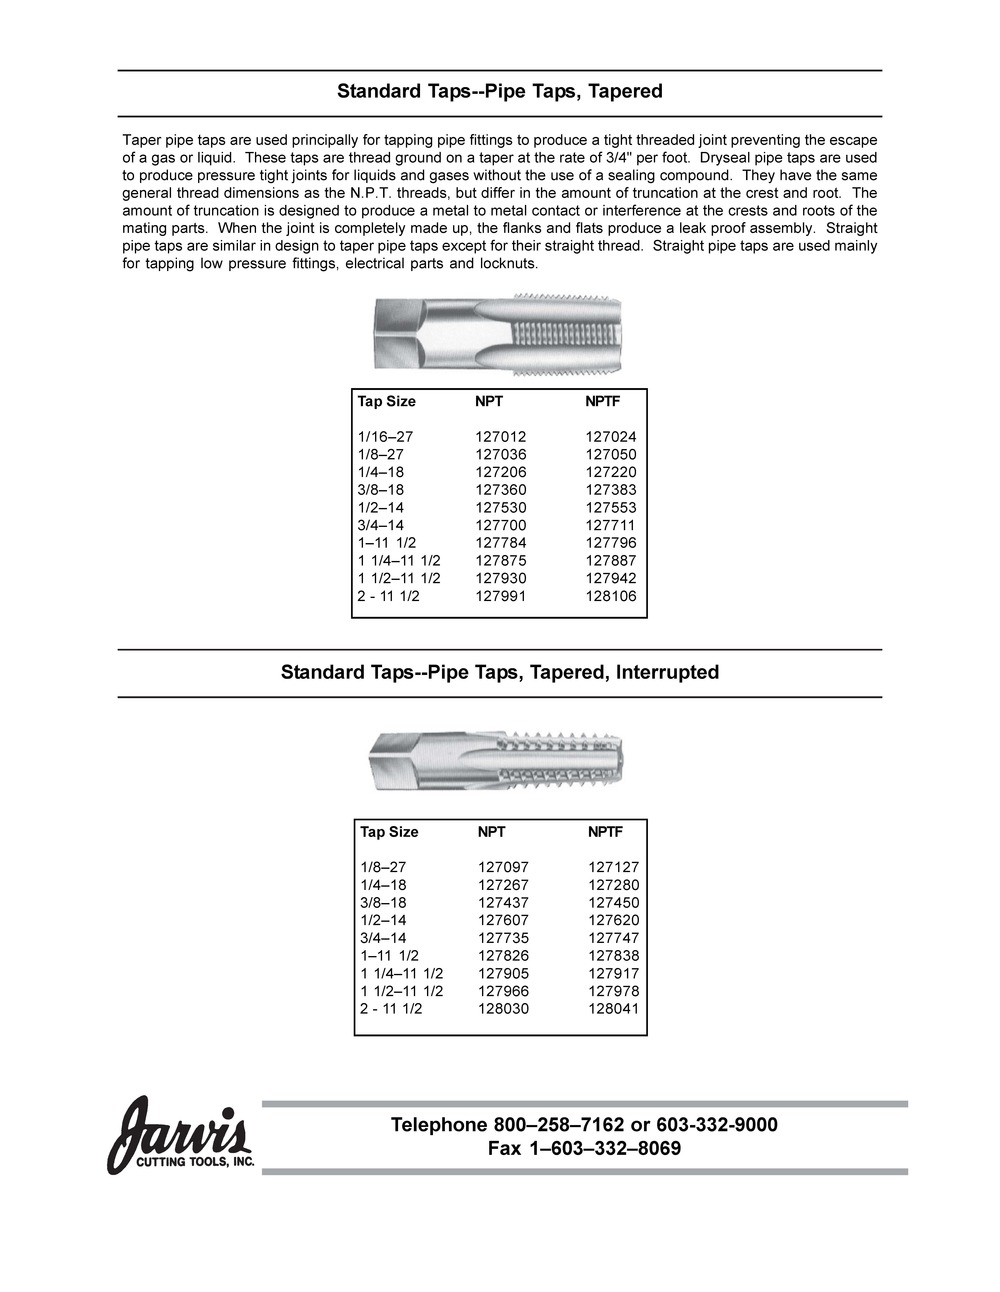 Pipe-Tap-Catalog_Page_1.jpg